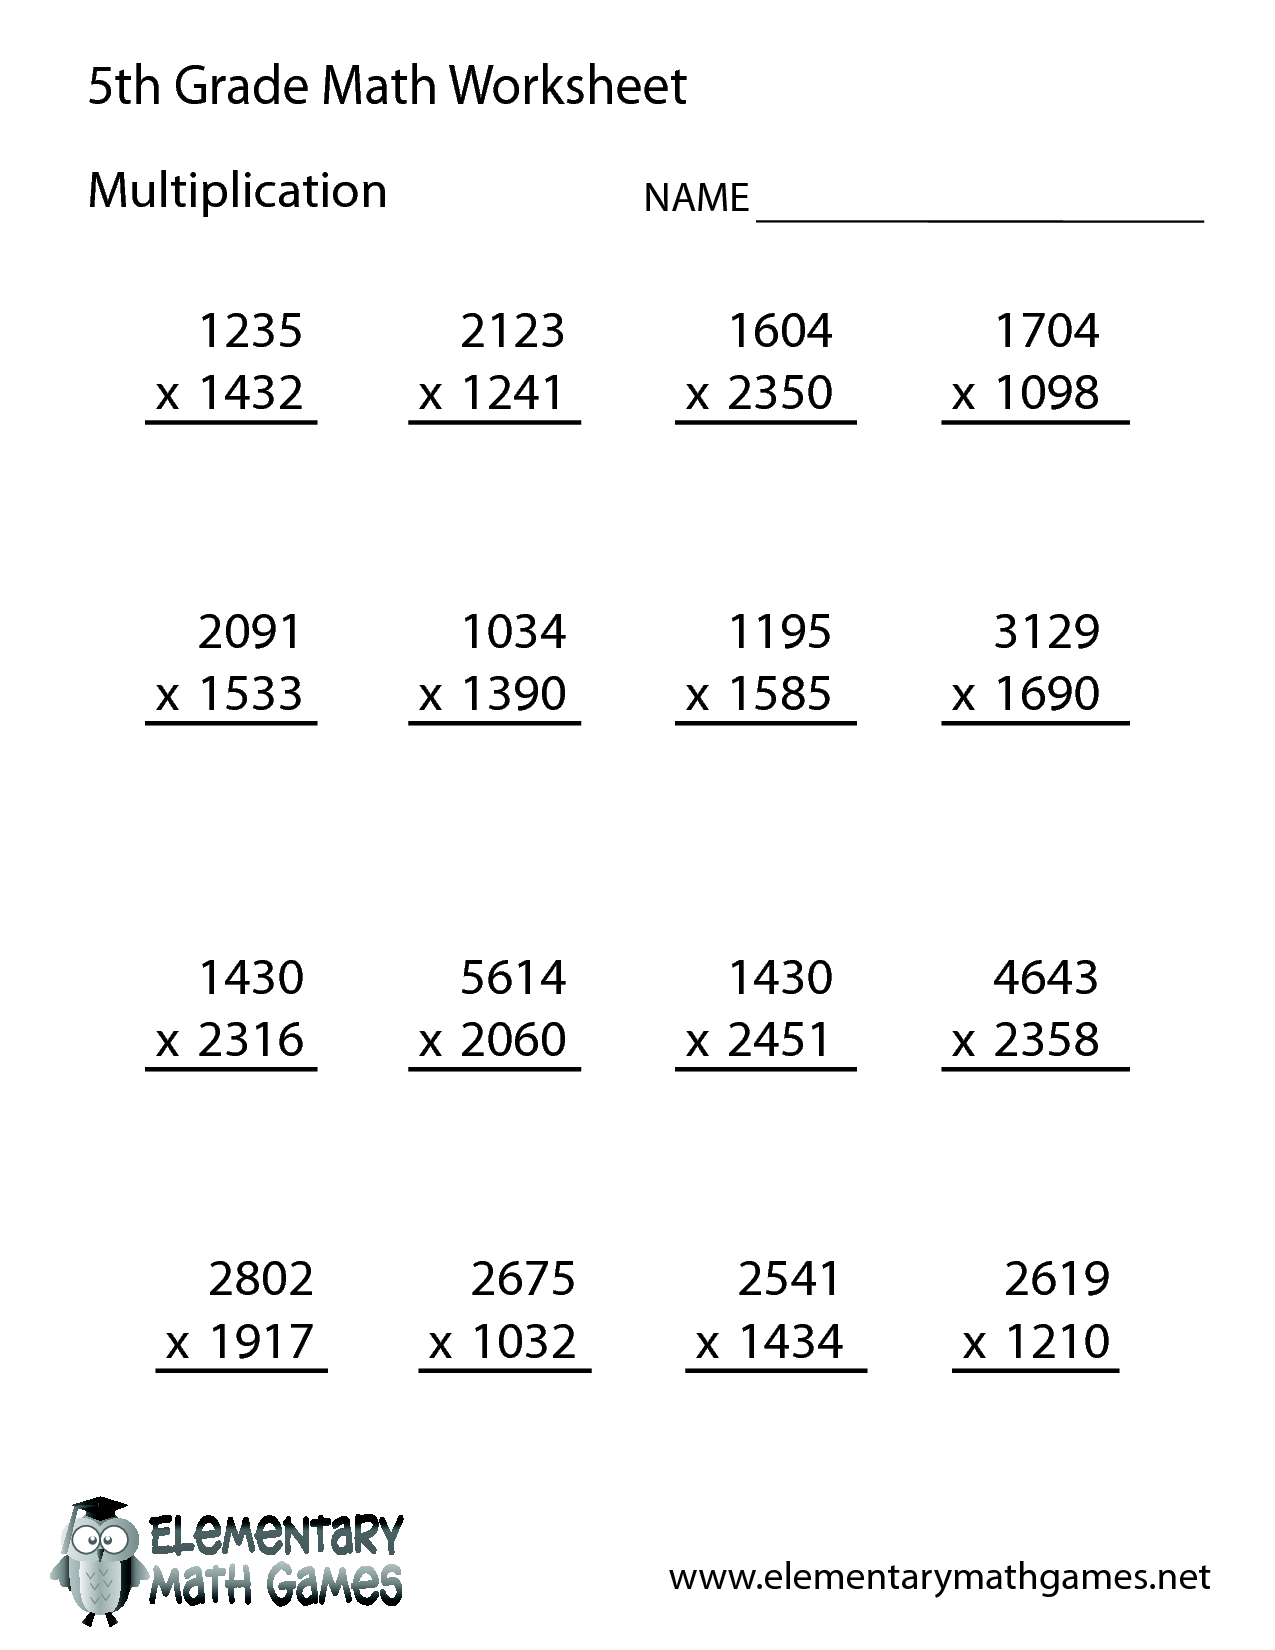 worksheet 5th Math Worksheets 78 best images about javales math worksheets on pinterest multiplication practice 5th grade and grades